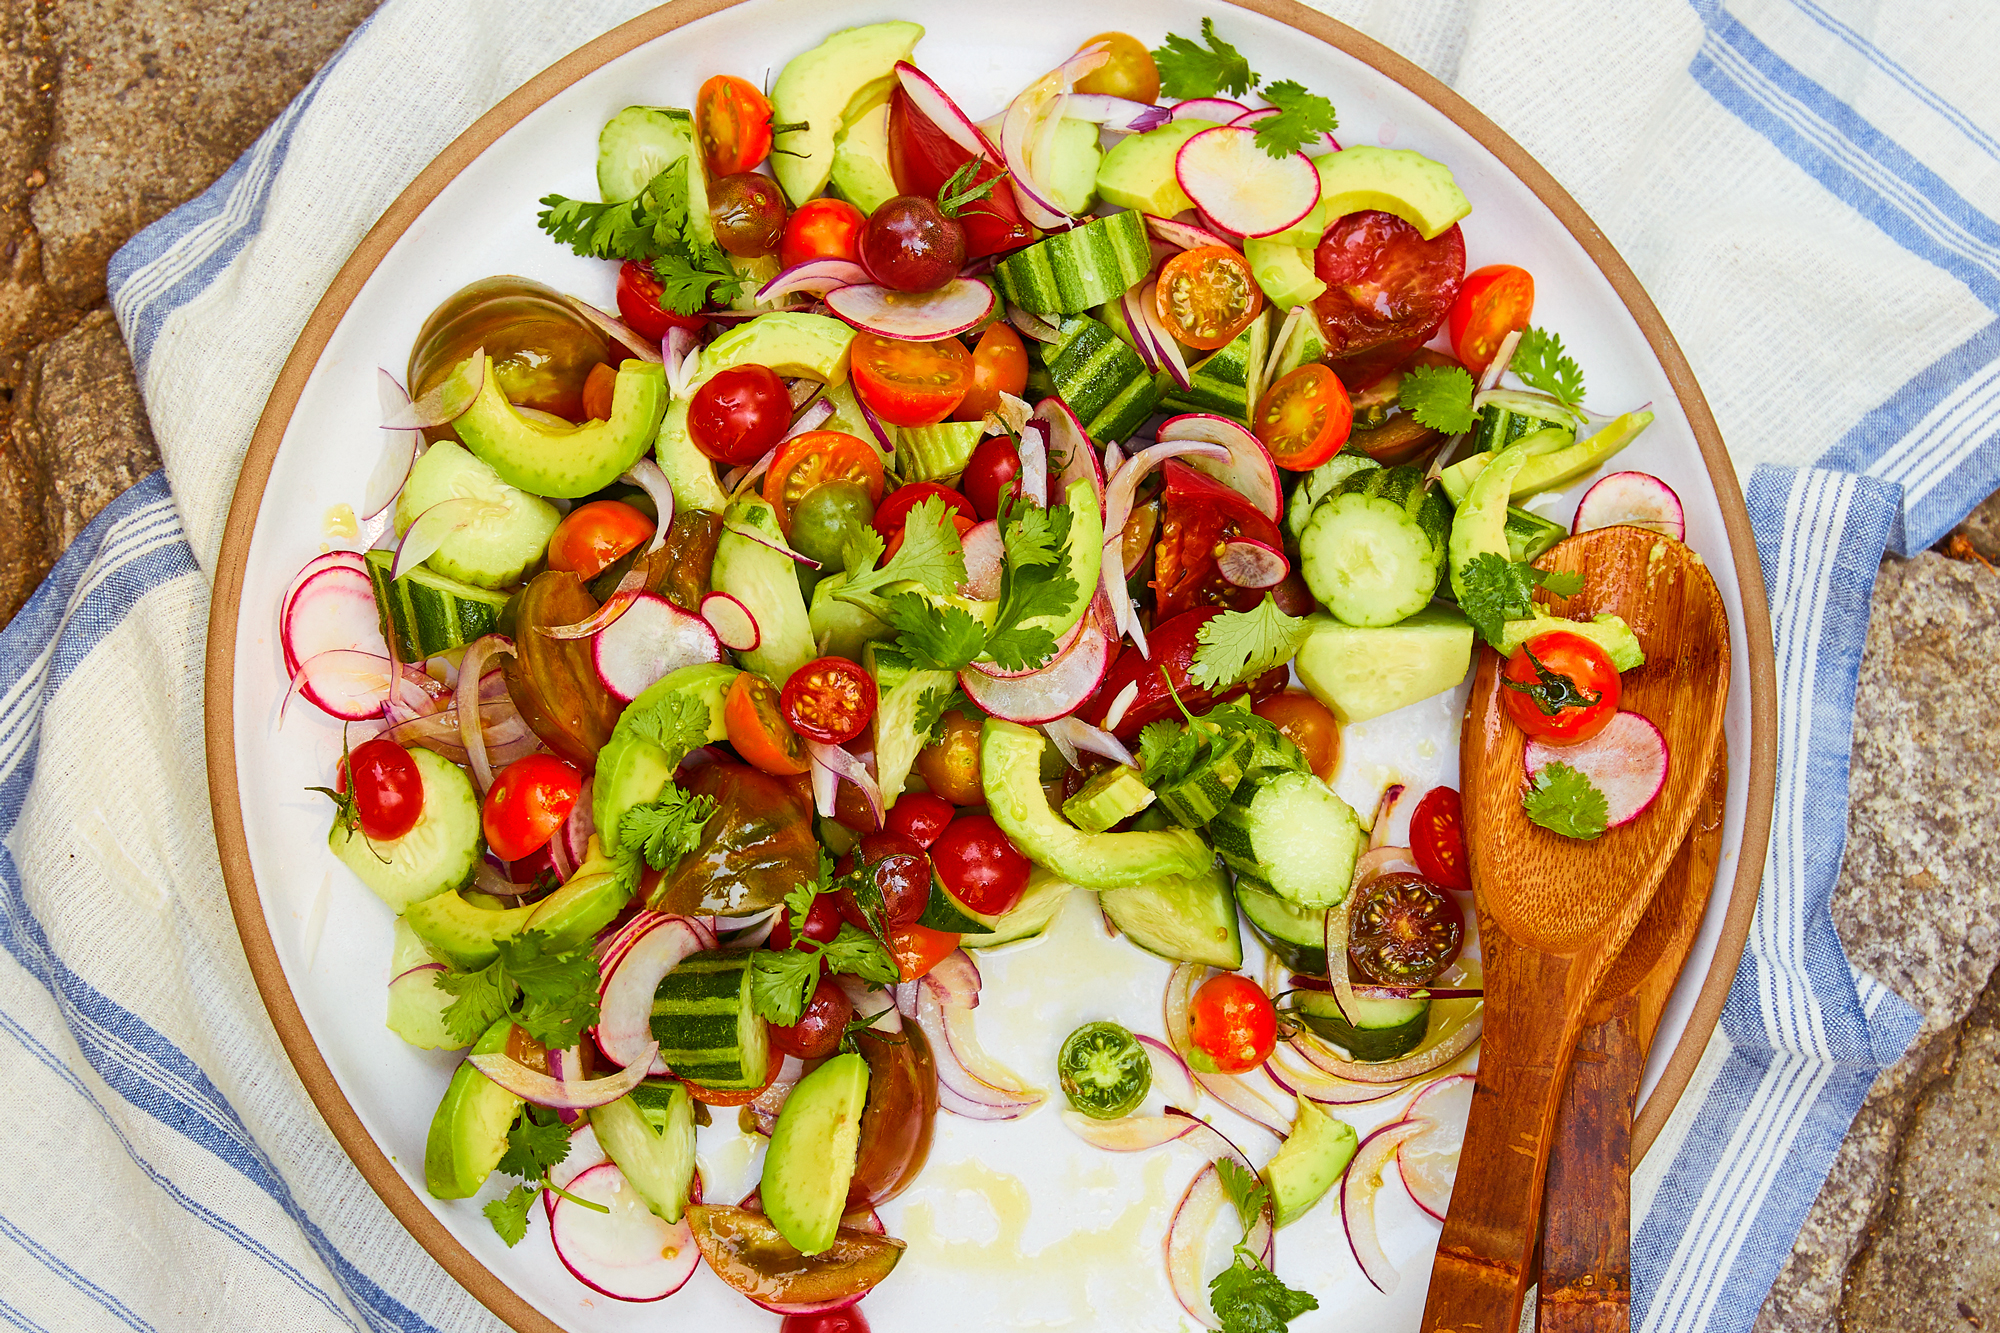 Summer Tomato Salad with Jicama and Avocado Recipe